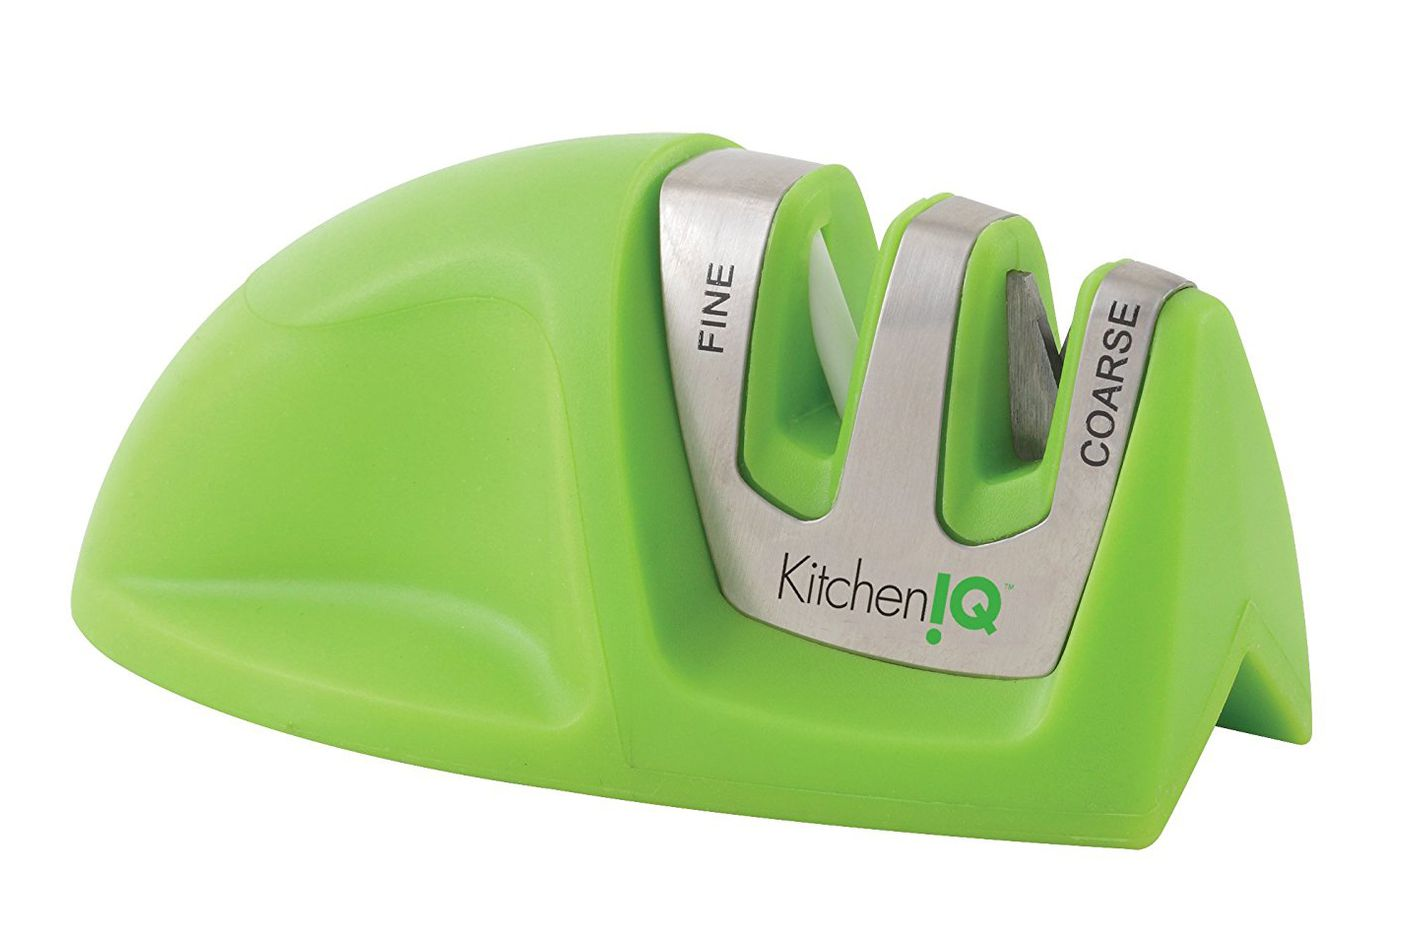 KitchenIQ 50009 Edge Grip 2 Stage Knife Sharpener, Green